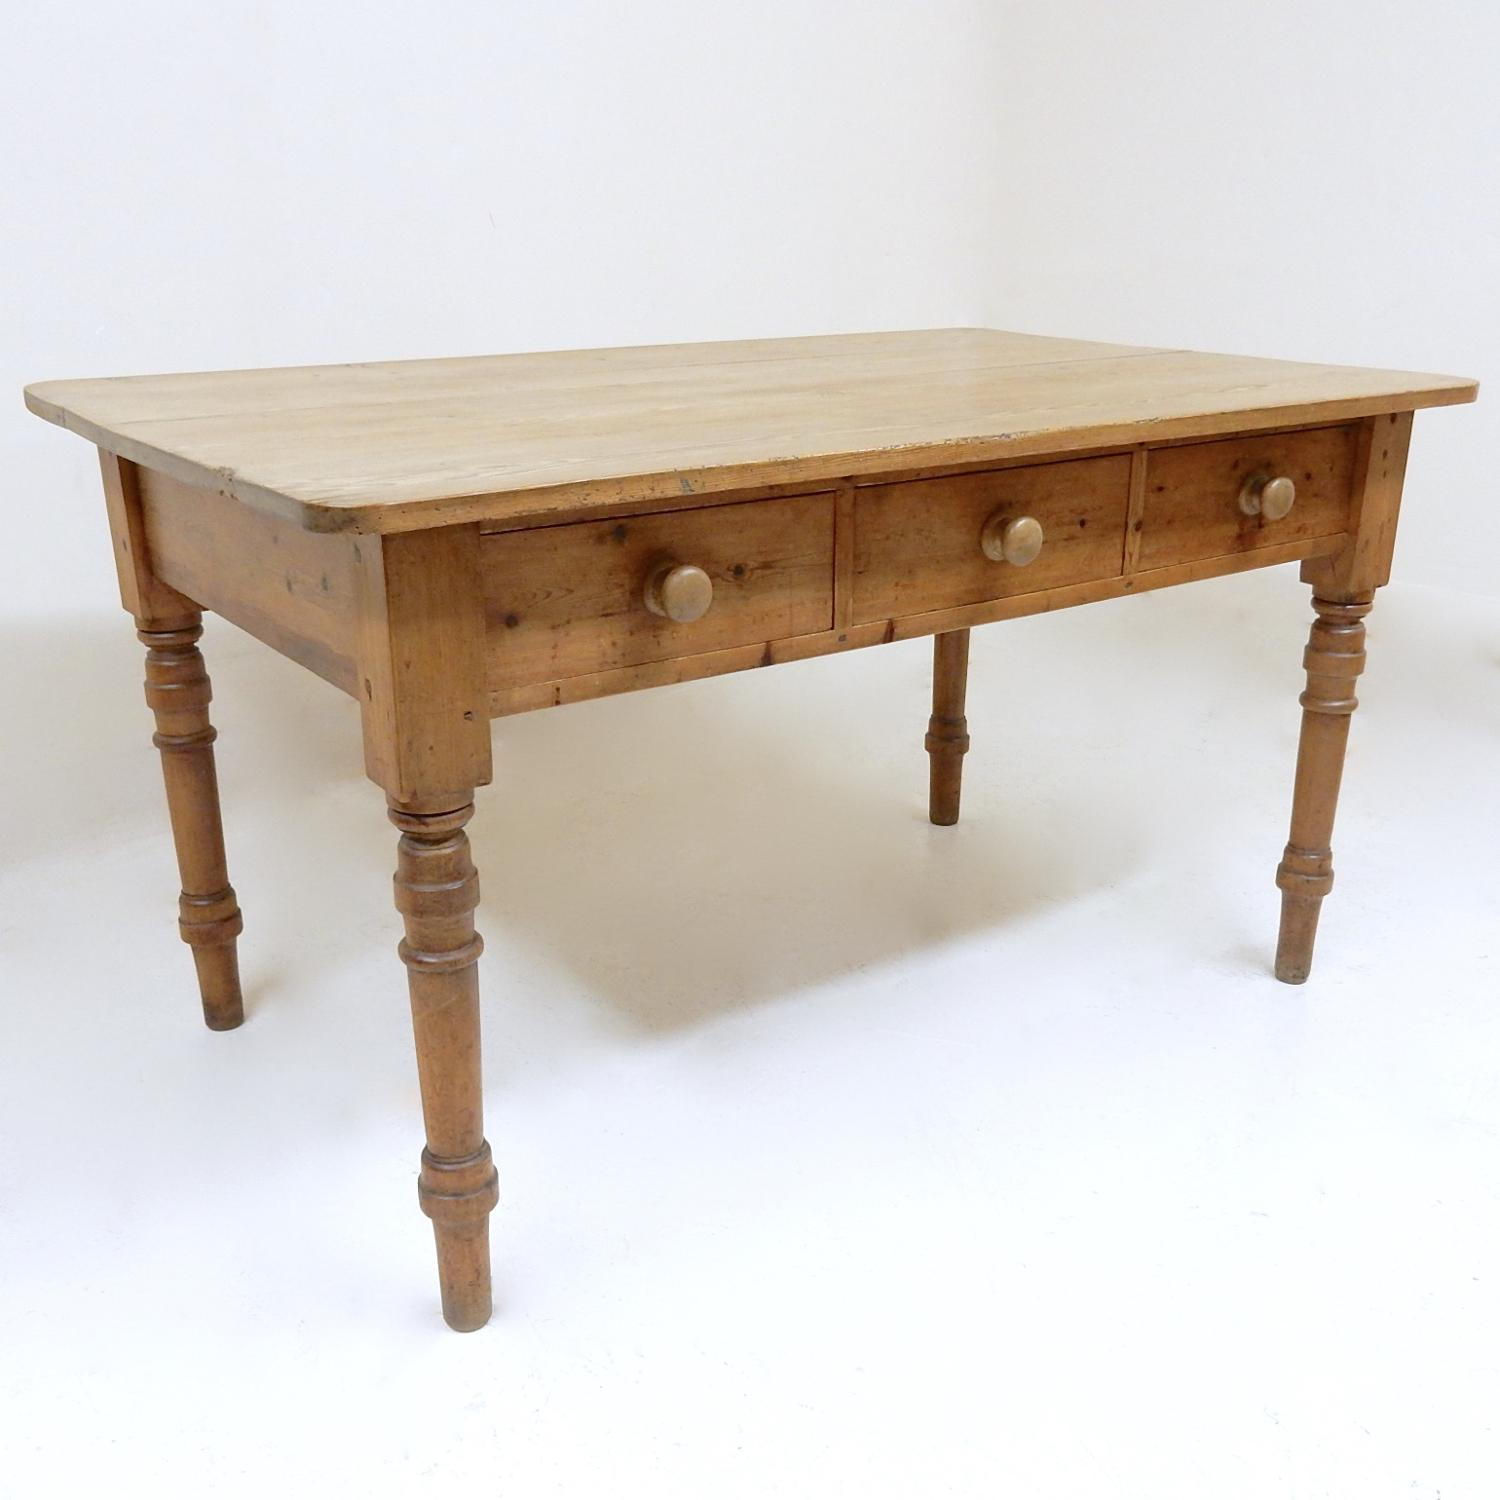 Pine Kitchen Table in Tables and Chairs